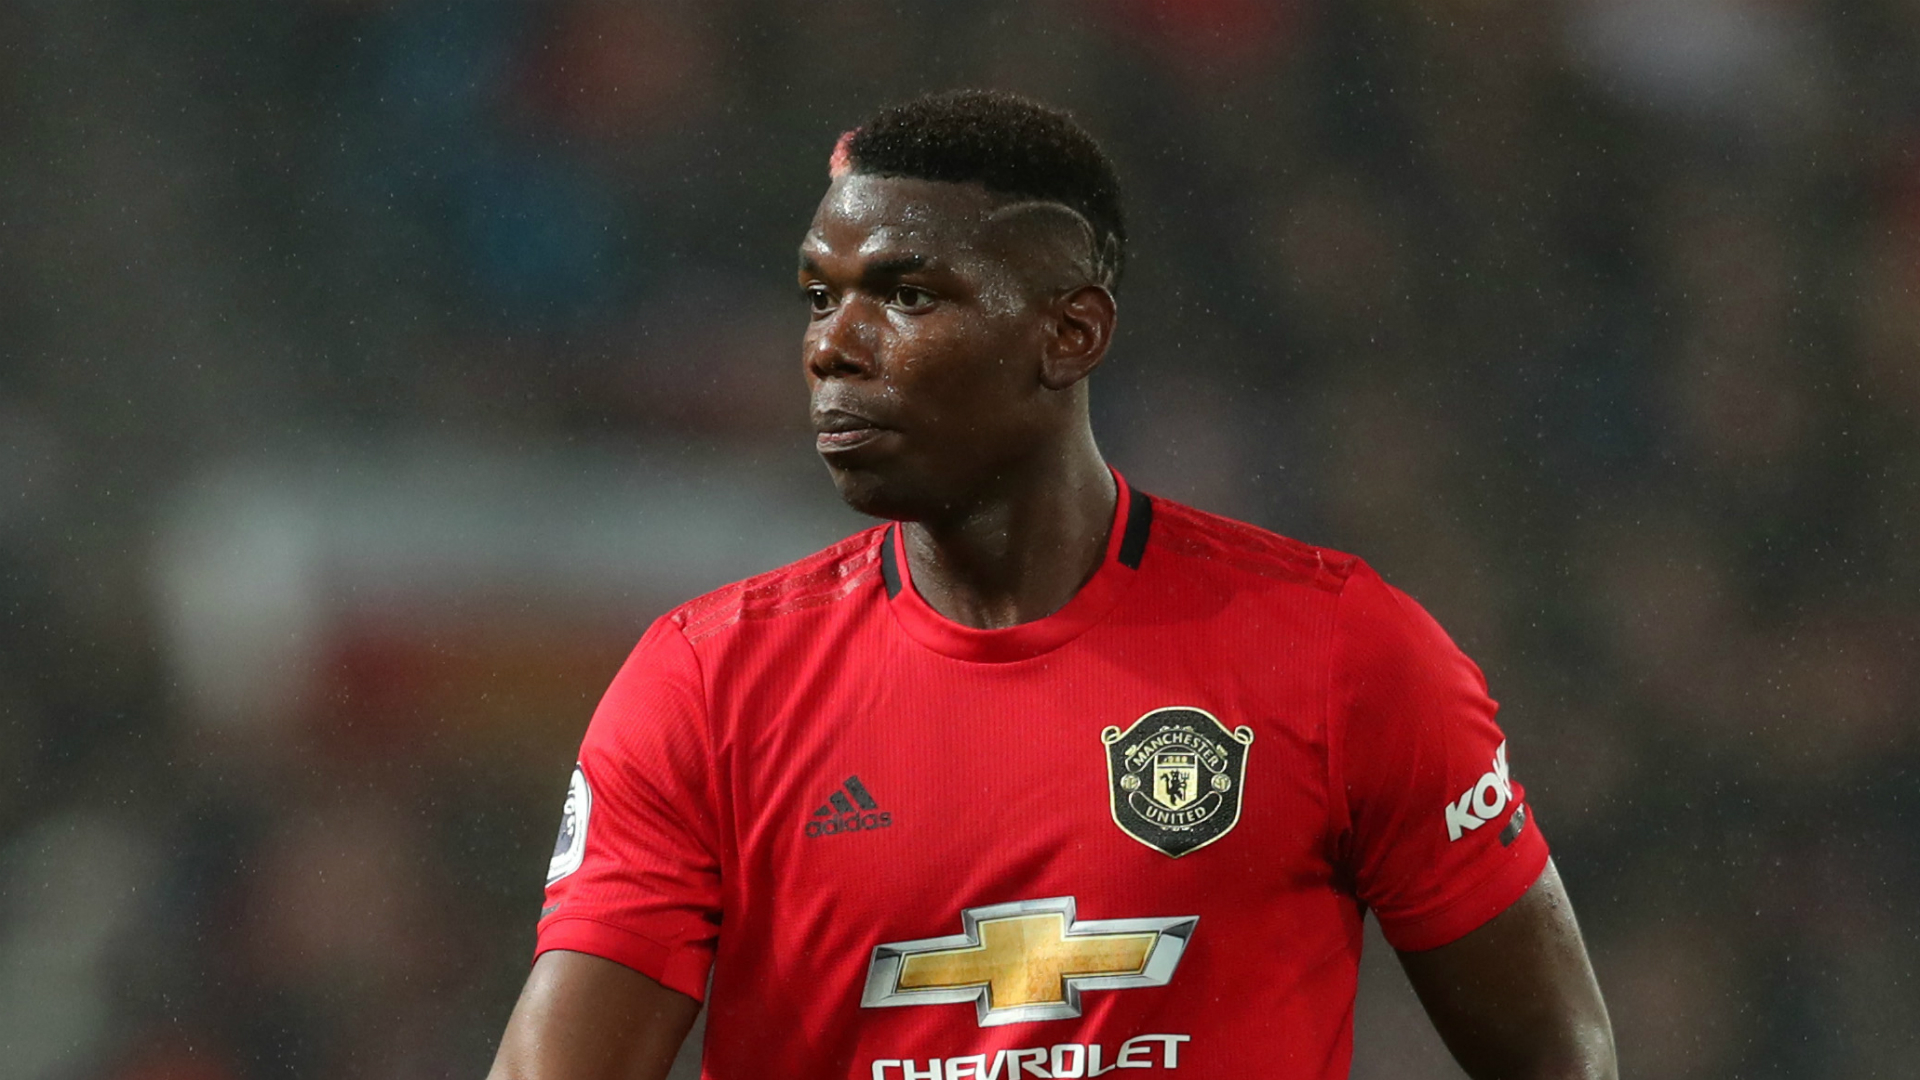 Solskjaer hopeful of welcoming back Pogba against Spurs for Mourinho reunion